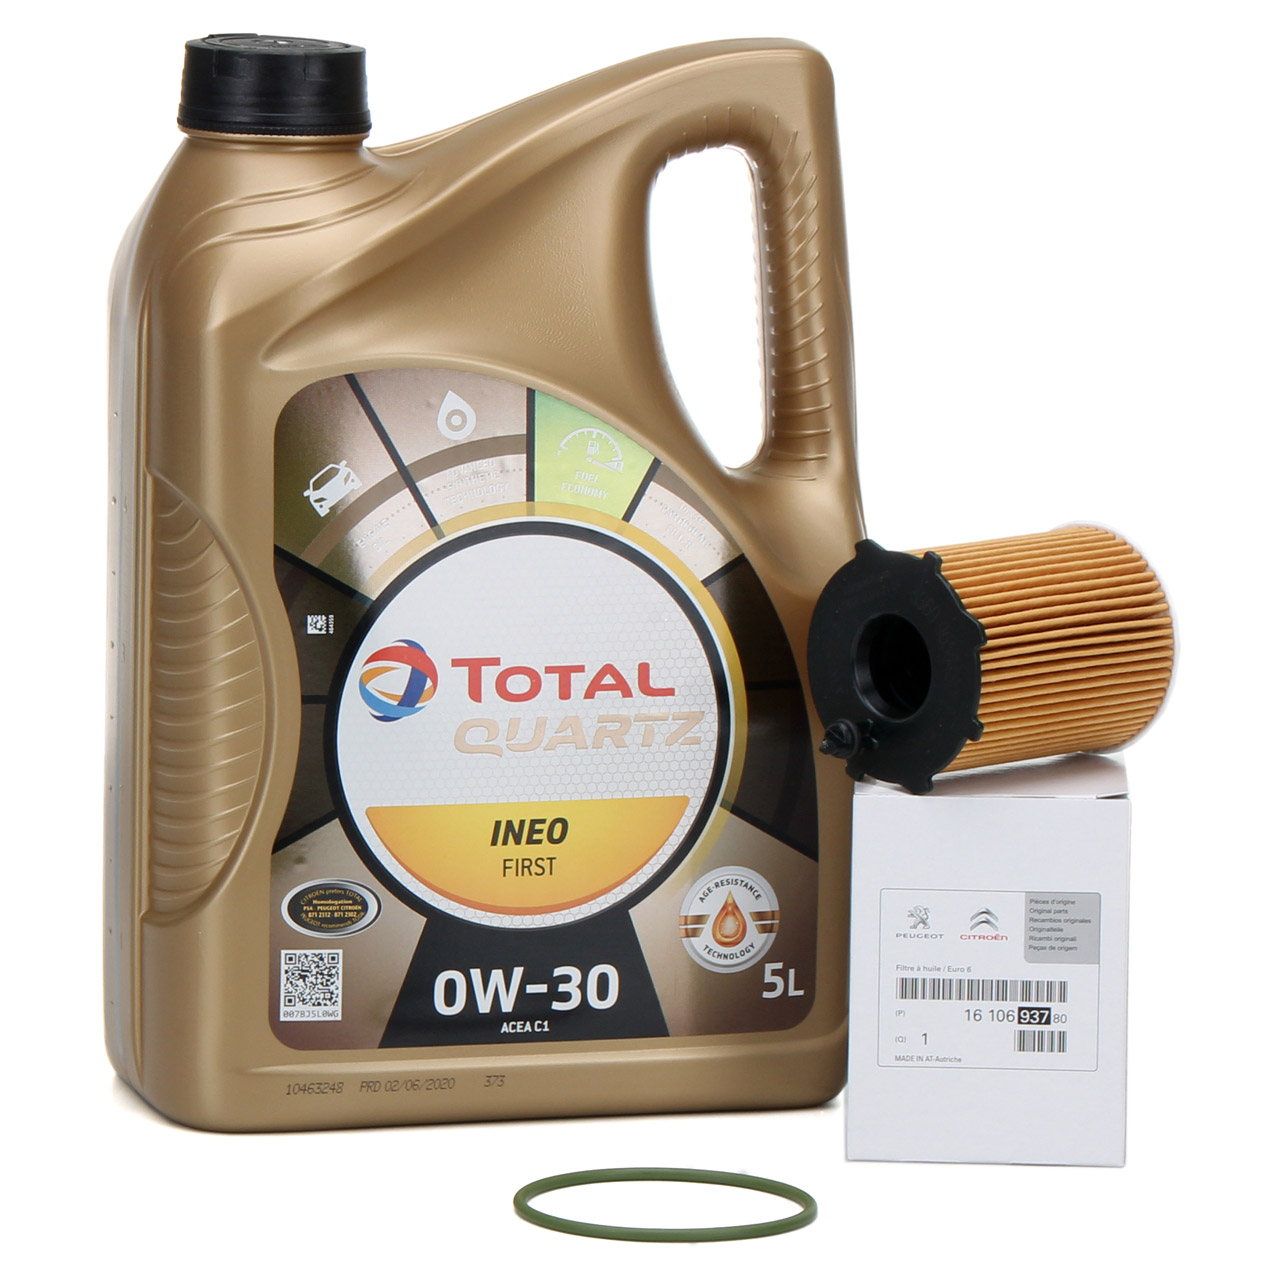 TOTAL QUARTZ INEO FIRST 0W-30 5 L + ORIGINAL Citroen Peugeot Ölfilter 1610693780